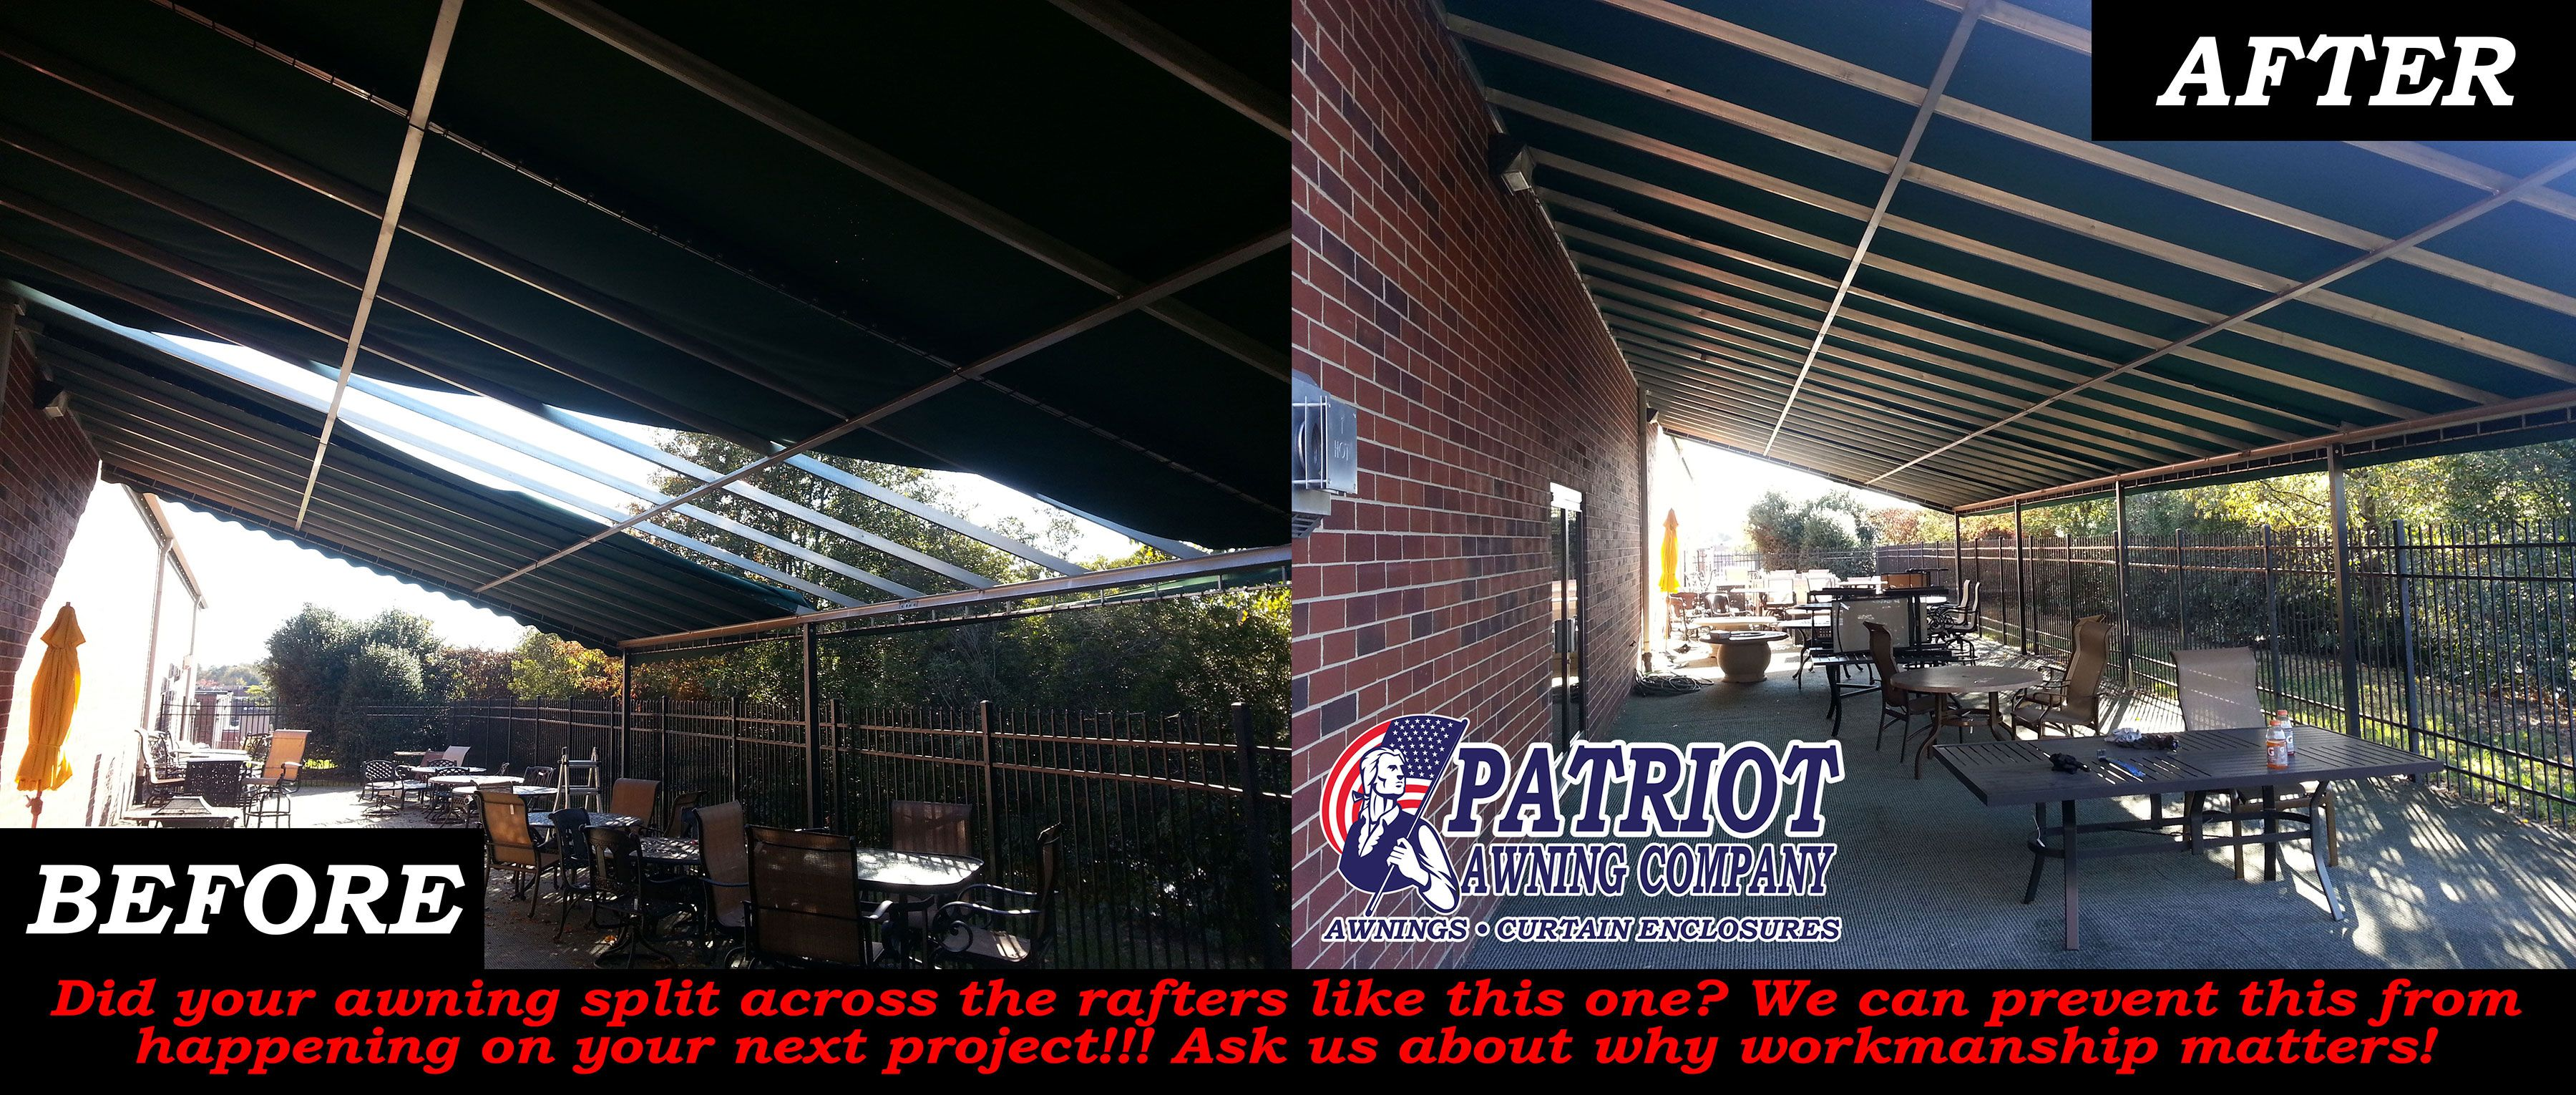 This Is The Firehouse Casual Living Store In Pineville. We Recovered This  Awning After The